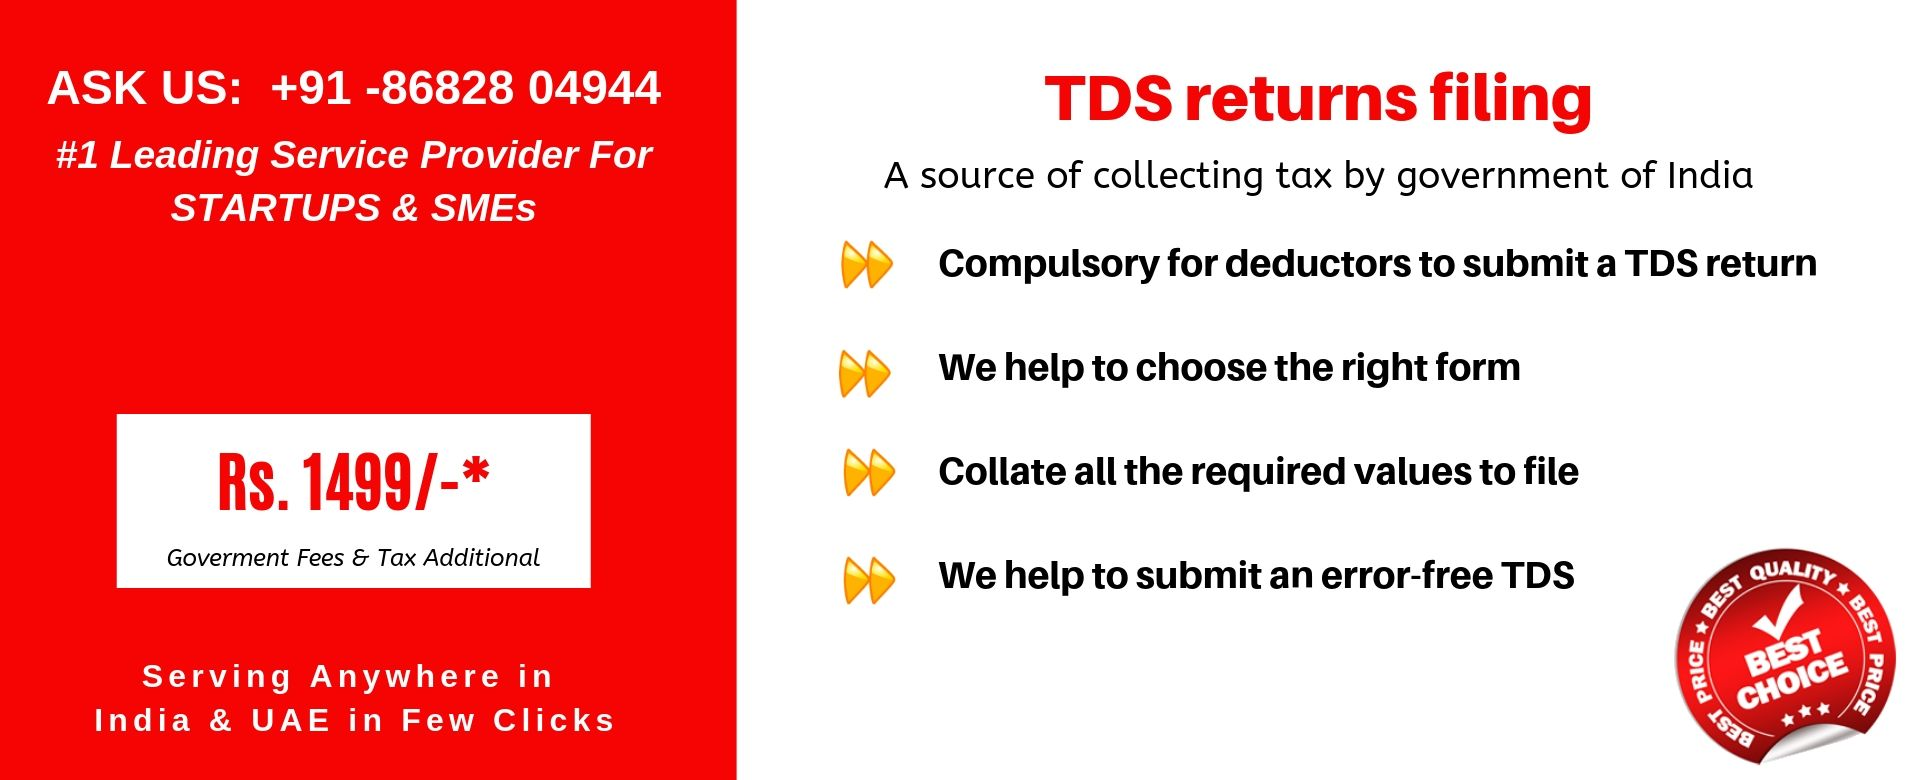 tds returns filing in india